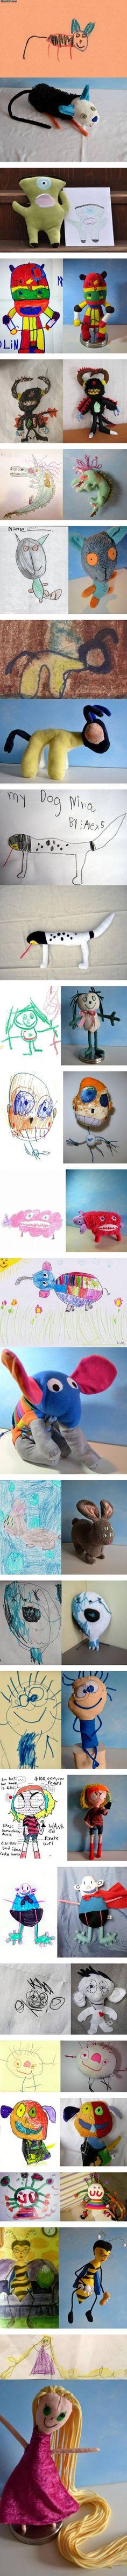 Hey look! Children's drawings were made into toys!